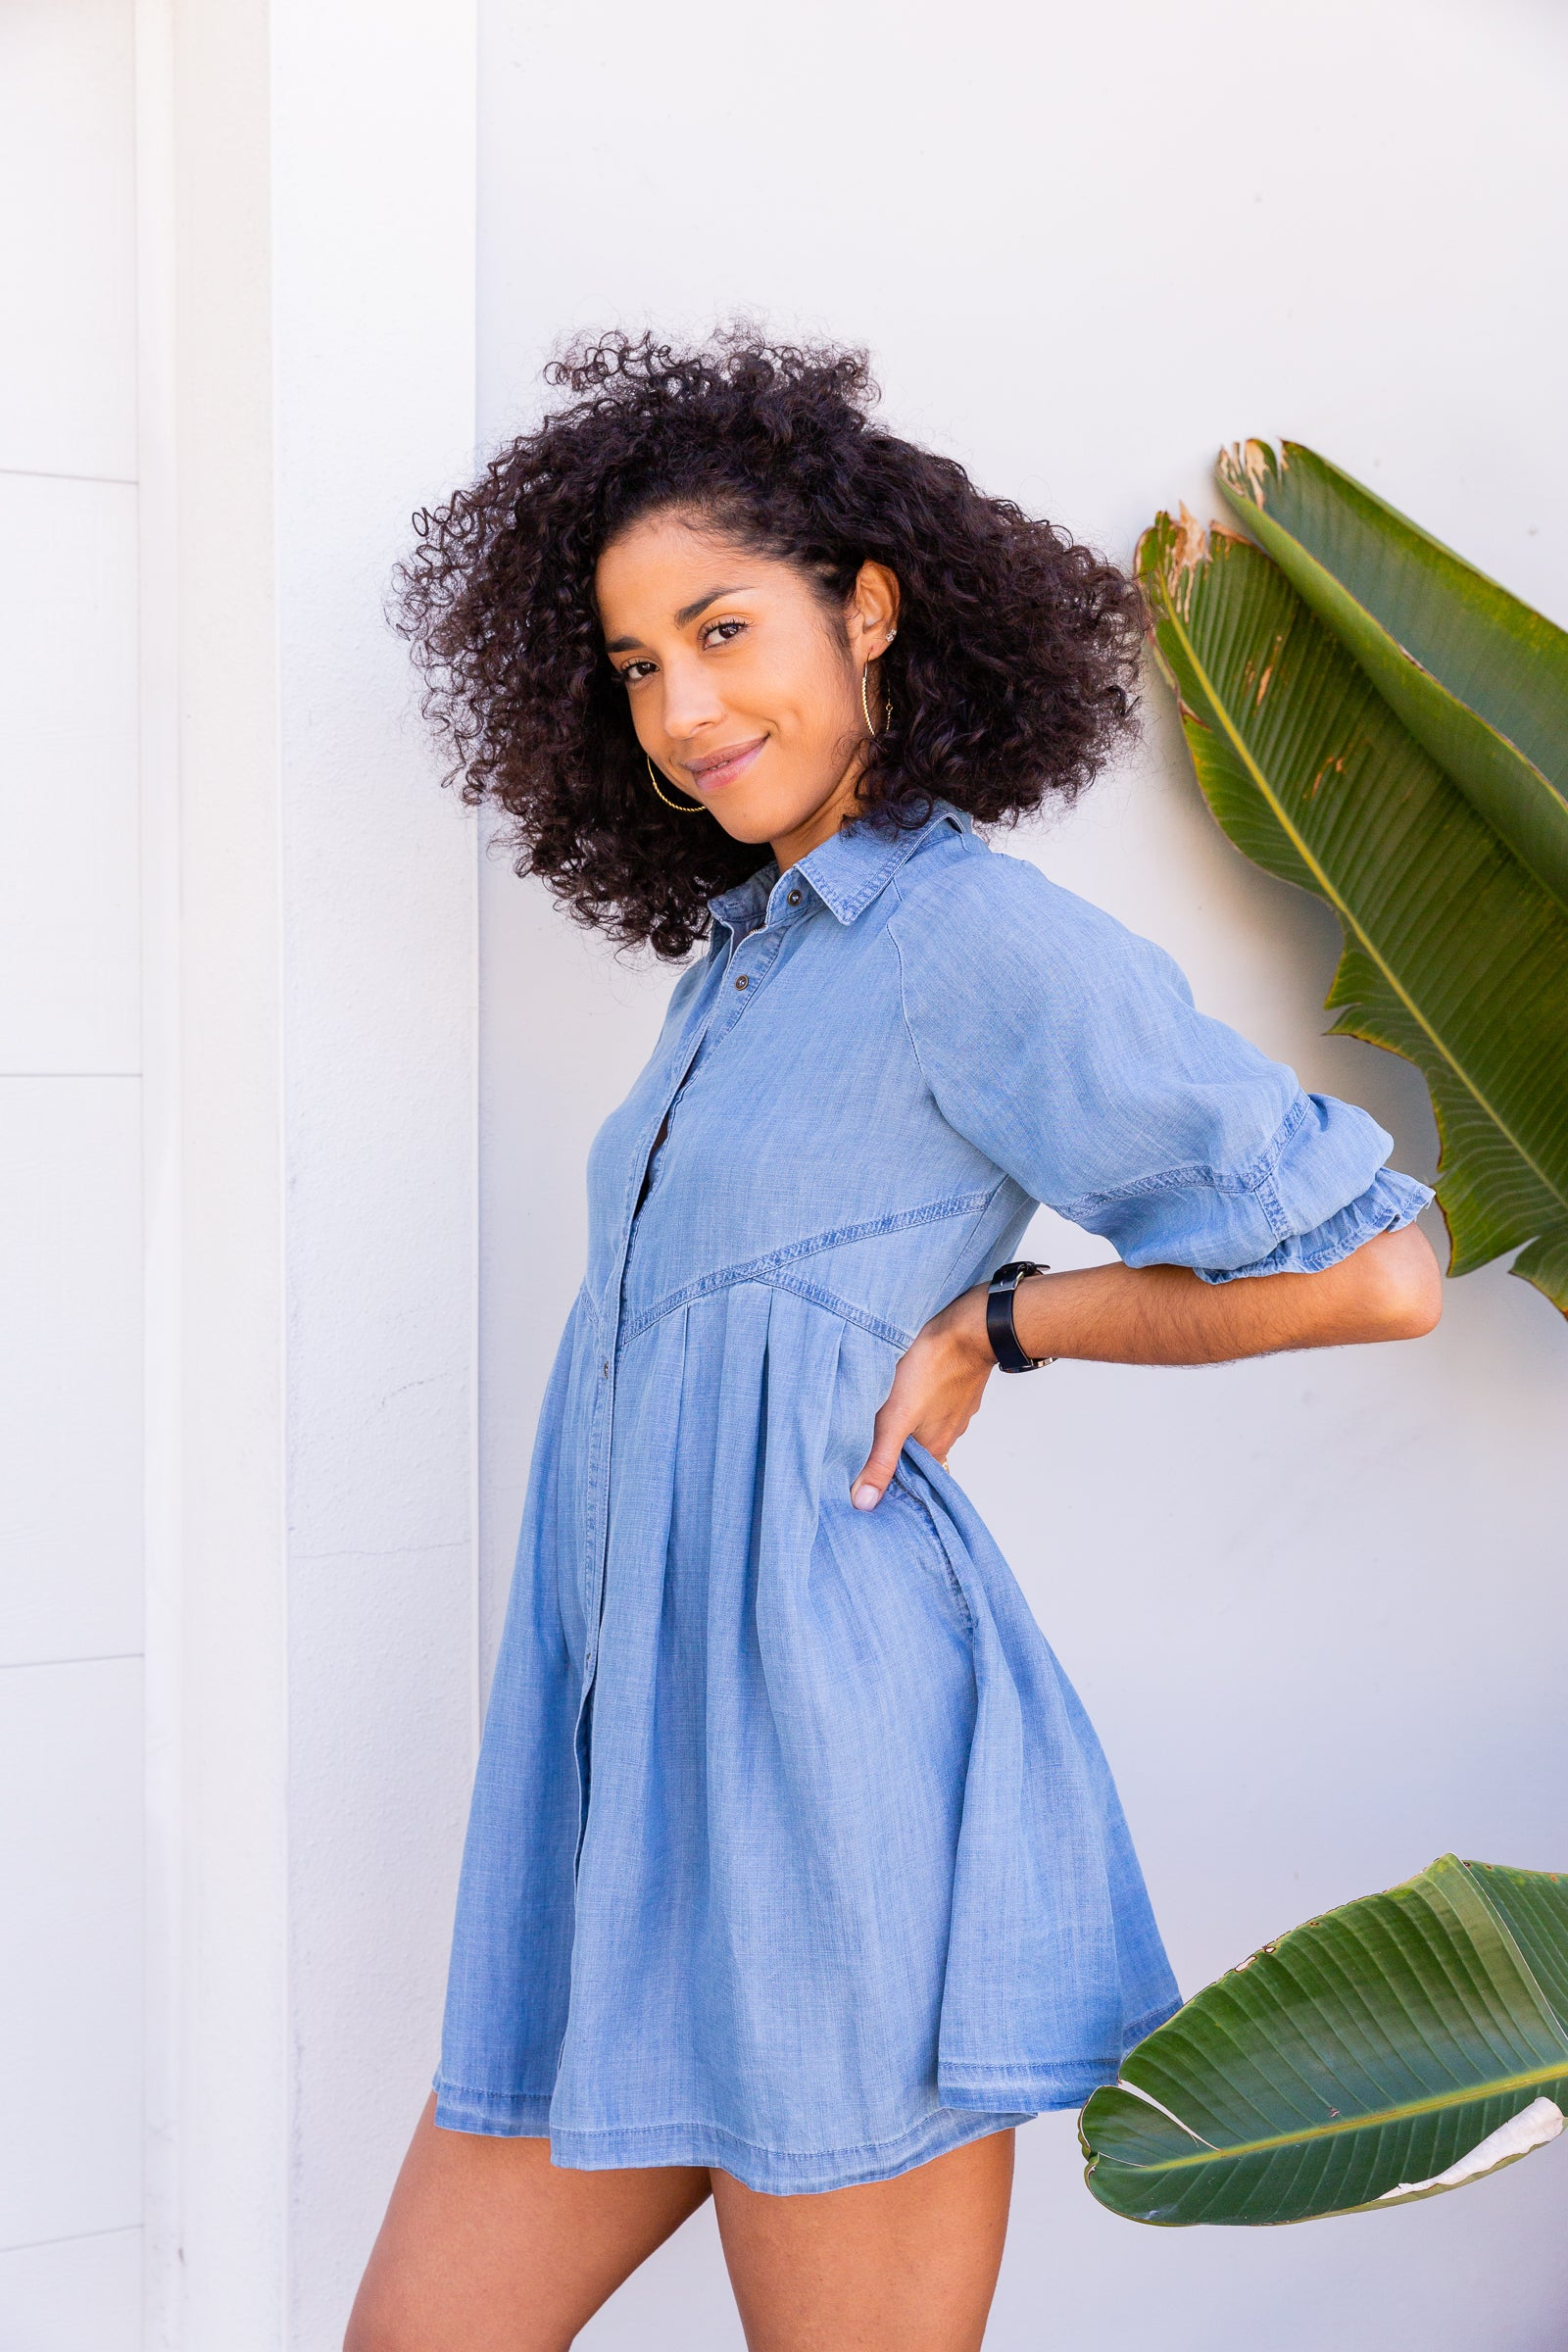 This medium wash chambray dress has mid-length elastic cuffed sleeves that attach to a collared neckline to an oversized and flowy button-down silhouette.